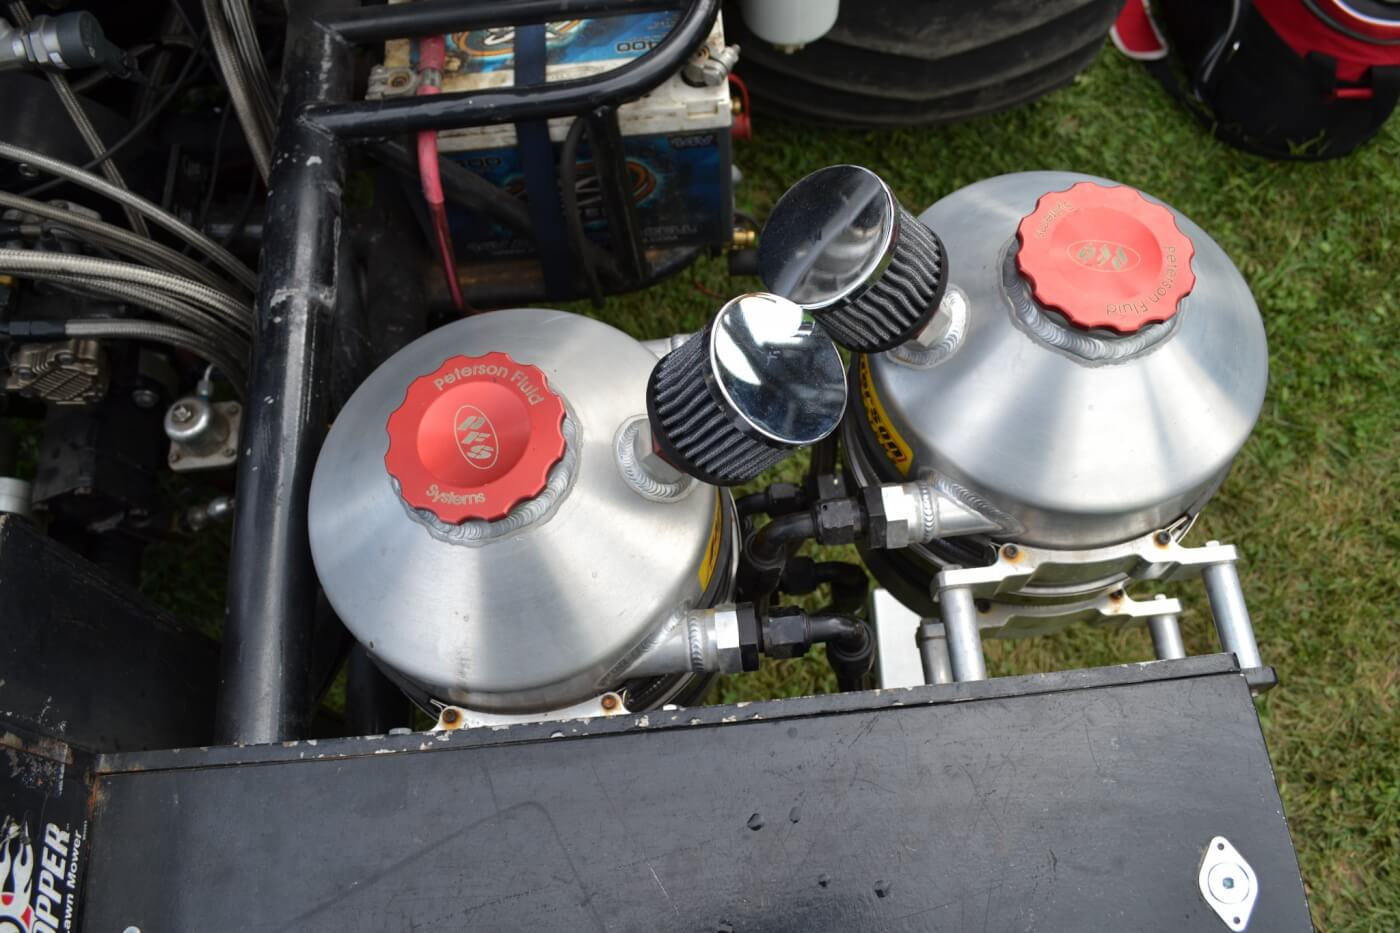 The oiling system for the Duramax system is quite complex, and uses an external wet sump system. Up front, four Peterson tanks (two on each side) hold oil for both the engine and turbo systems, as well as diesel fuel, and water for the water injection system.